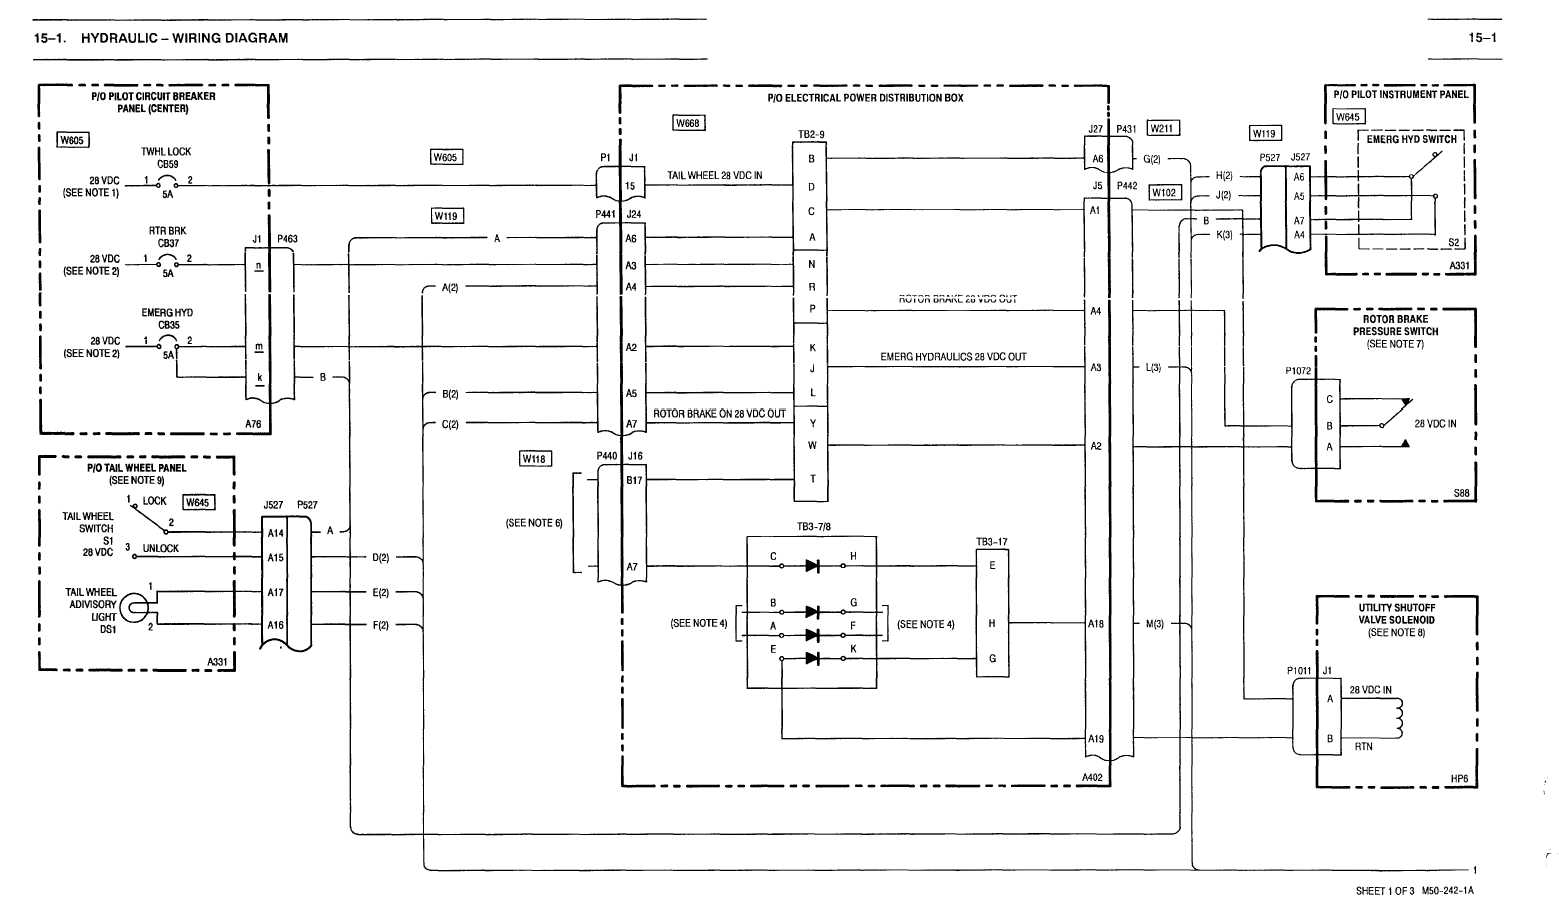 Ih 784 Wiring Diagram Detailed Diagrams For 666 Tractor 15 1 Hydraulic 2001 International Truck